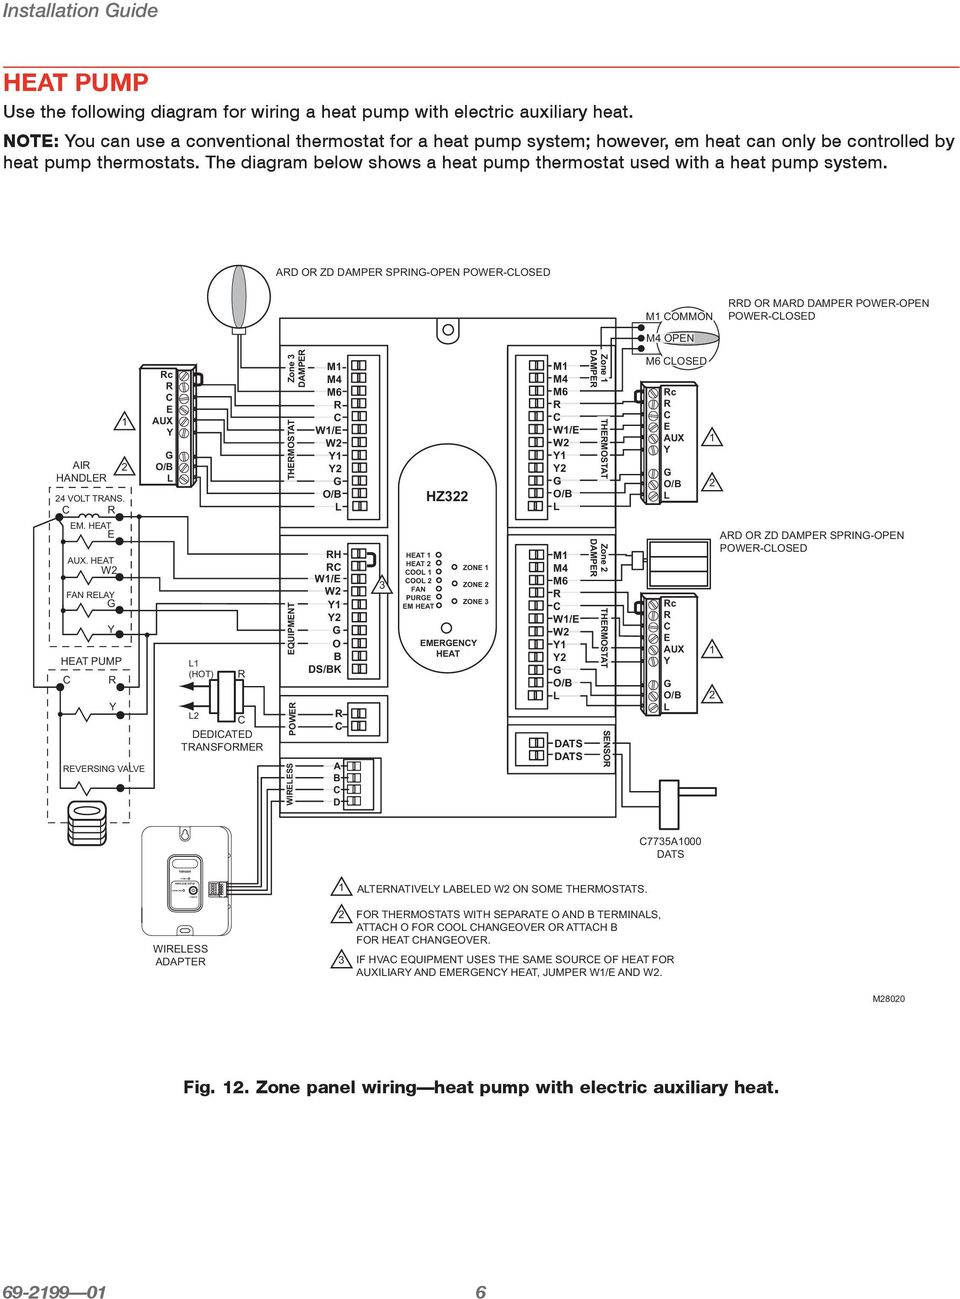 Honeywell Slate Air House Wiring Drawings Diagram Online Thermostat Wire 2 Data Blog Guide